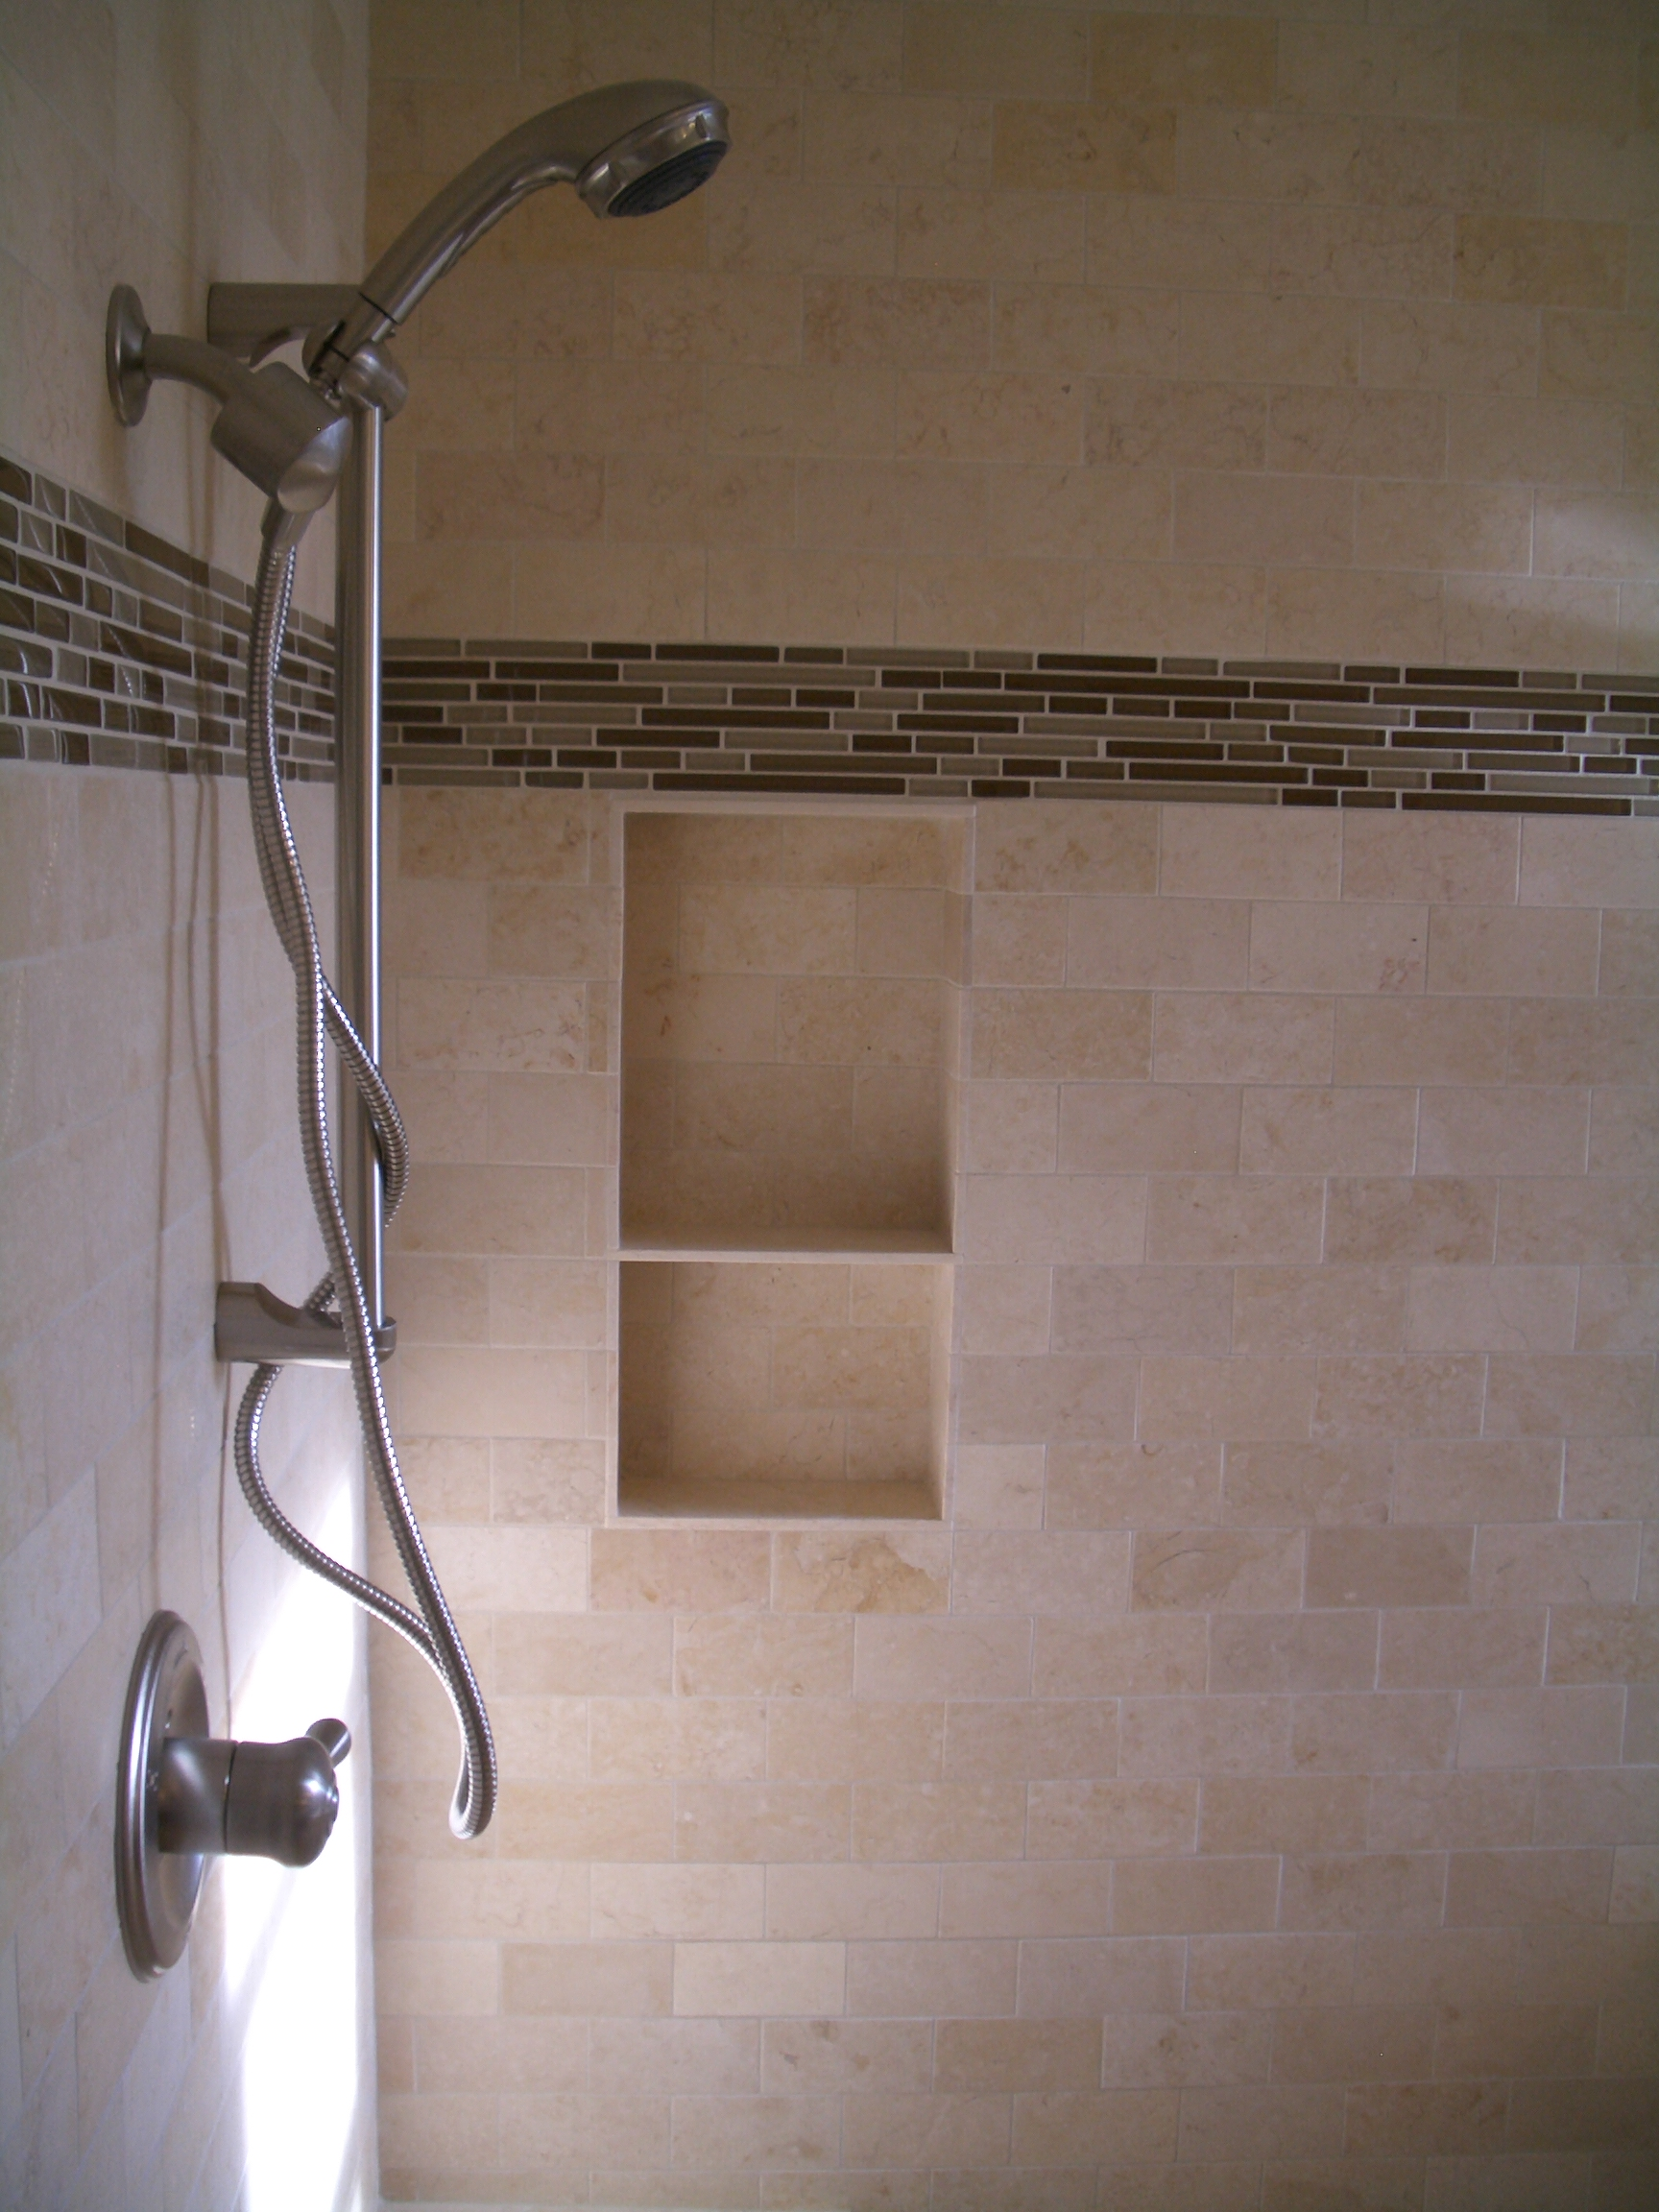 Awesome Average Cost Of Bath Fitters Big Walk In Shower Small Bathroom Rectangular Bath Remodel Tile Shower Bath Tub Mat Towel Youthful Bathroom Wall Tiles Pattern Design RedBathroom Home Design How To Build A Niche For Your Shower \u2013 Part 1